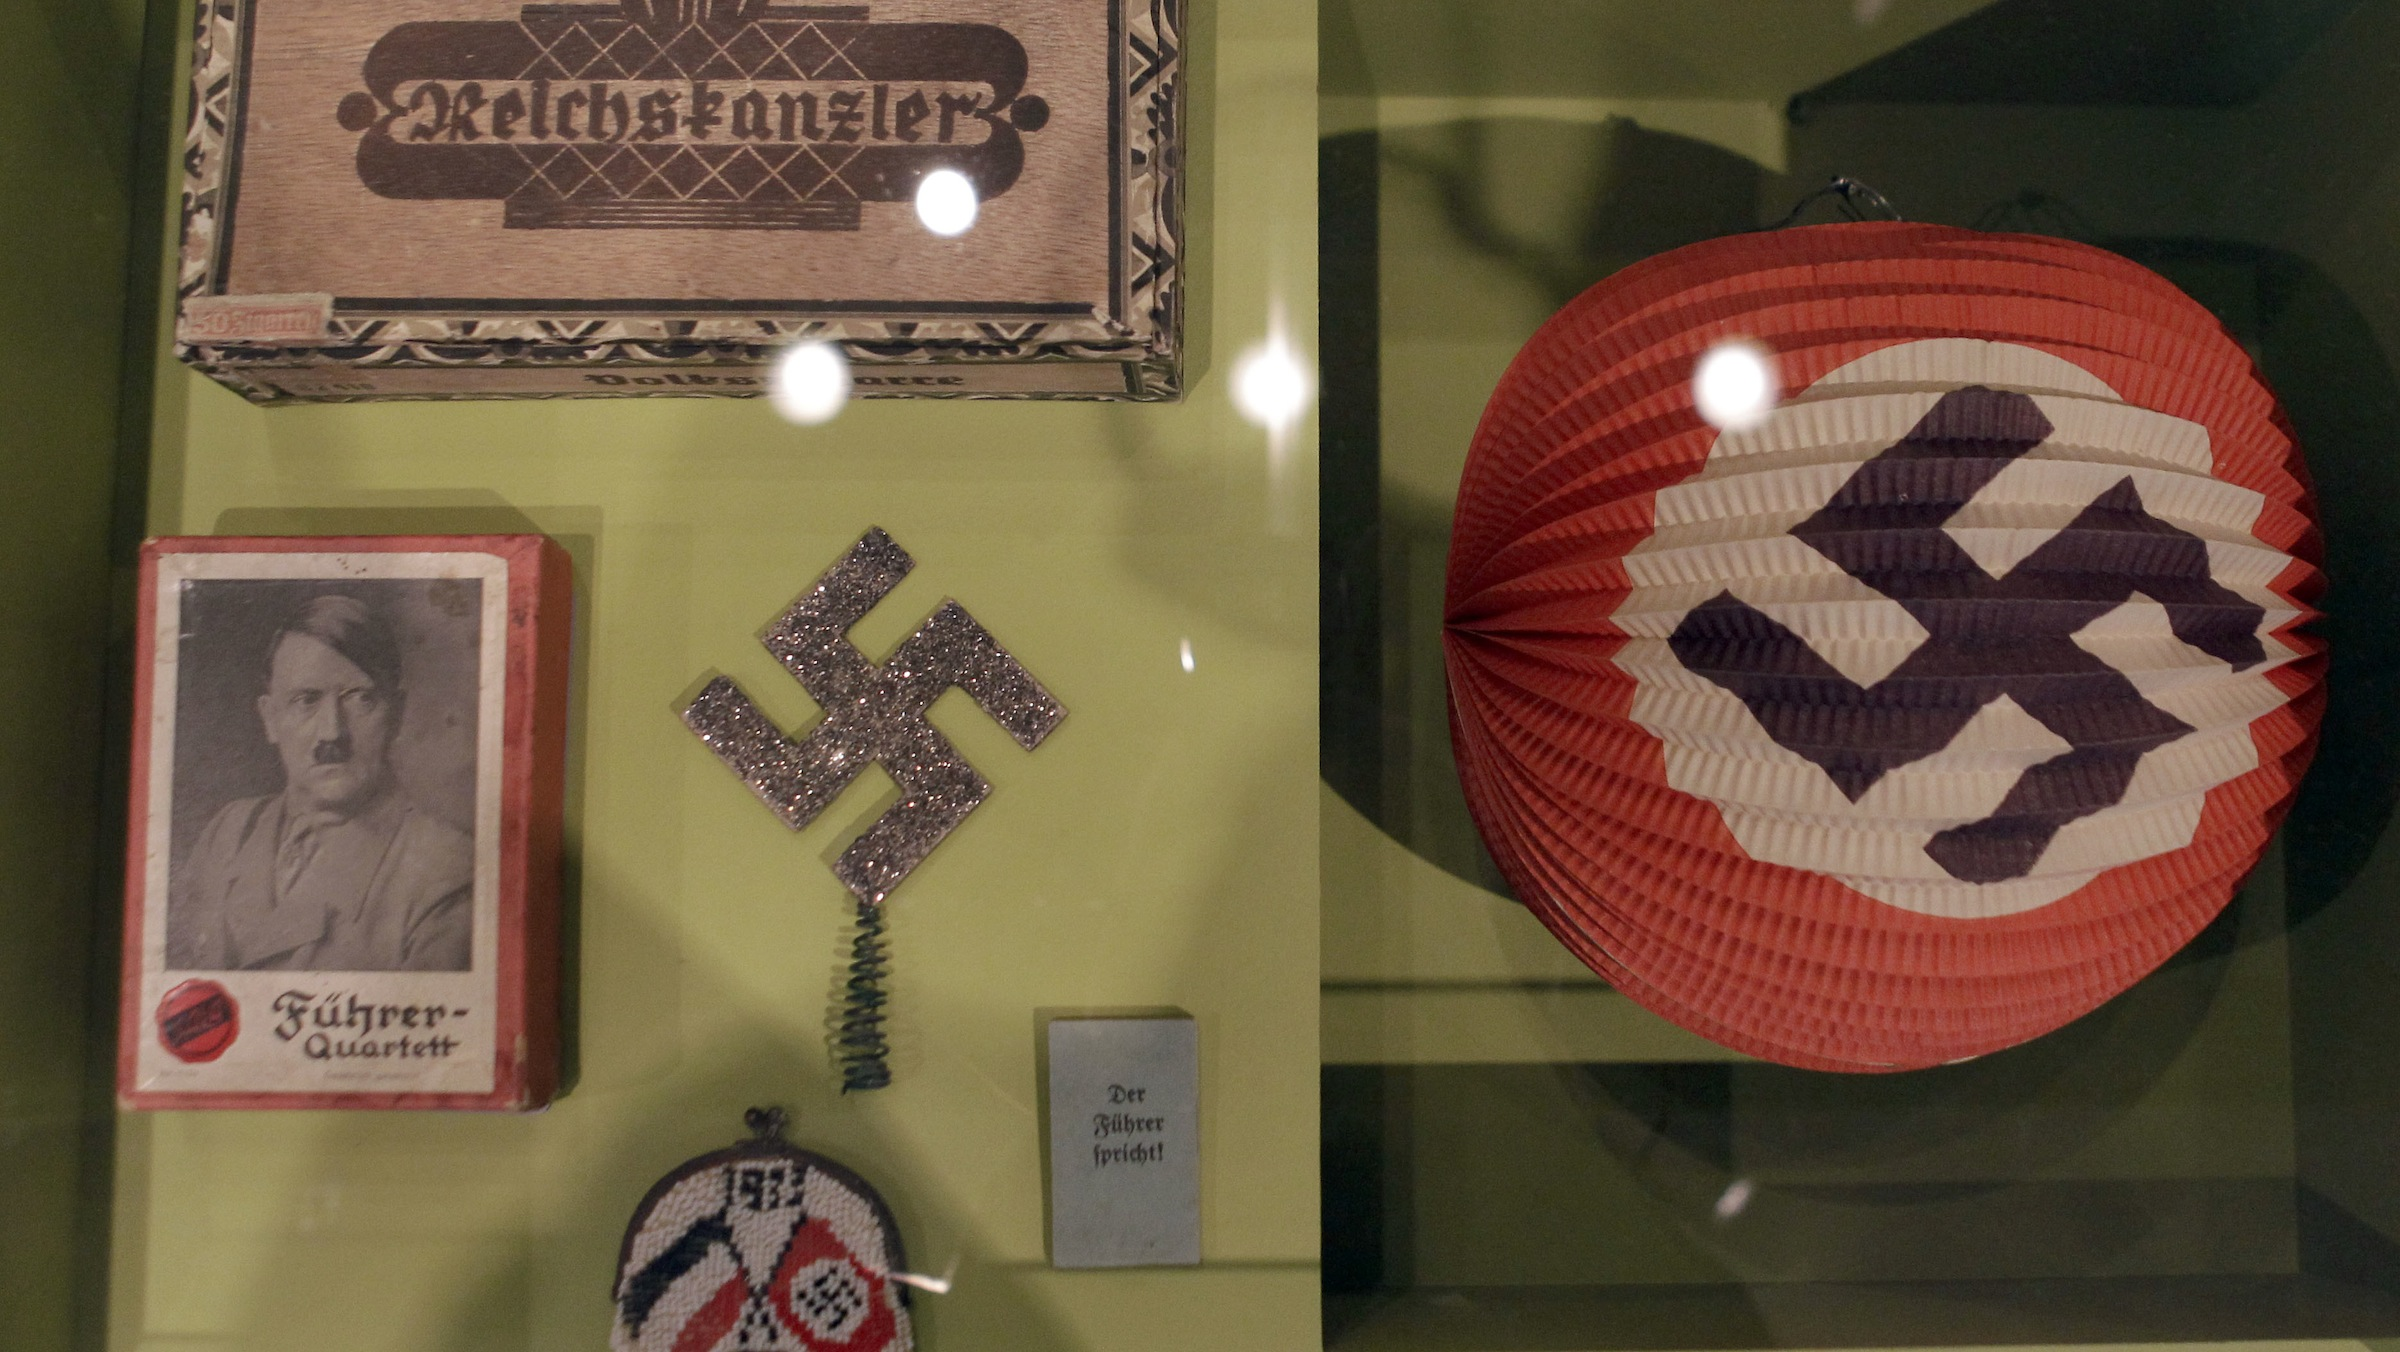 Various Nazi paraphernalia like cigars, a lampion, a wallet and a quartet decorated with a swastika are pictured during a preview for the exhebition 'Hitler and the Germans - nation and crime' in Berlin, Germany, Wednesday, Oct. 13, 2010. The exhibition runs from Oct. 15, 2010 until Feb. 6, 2011. (AP Photo/Michael Sohn)